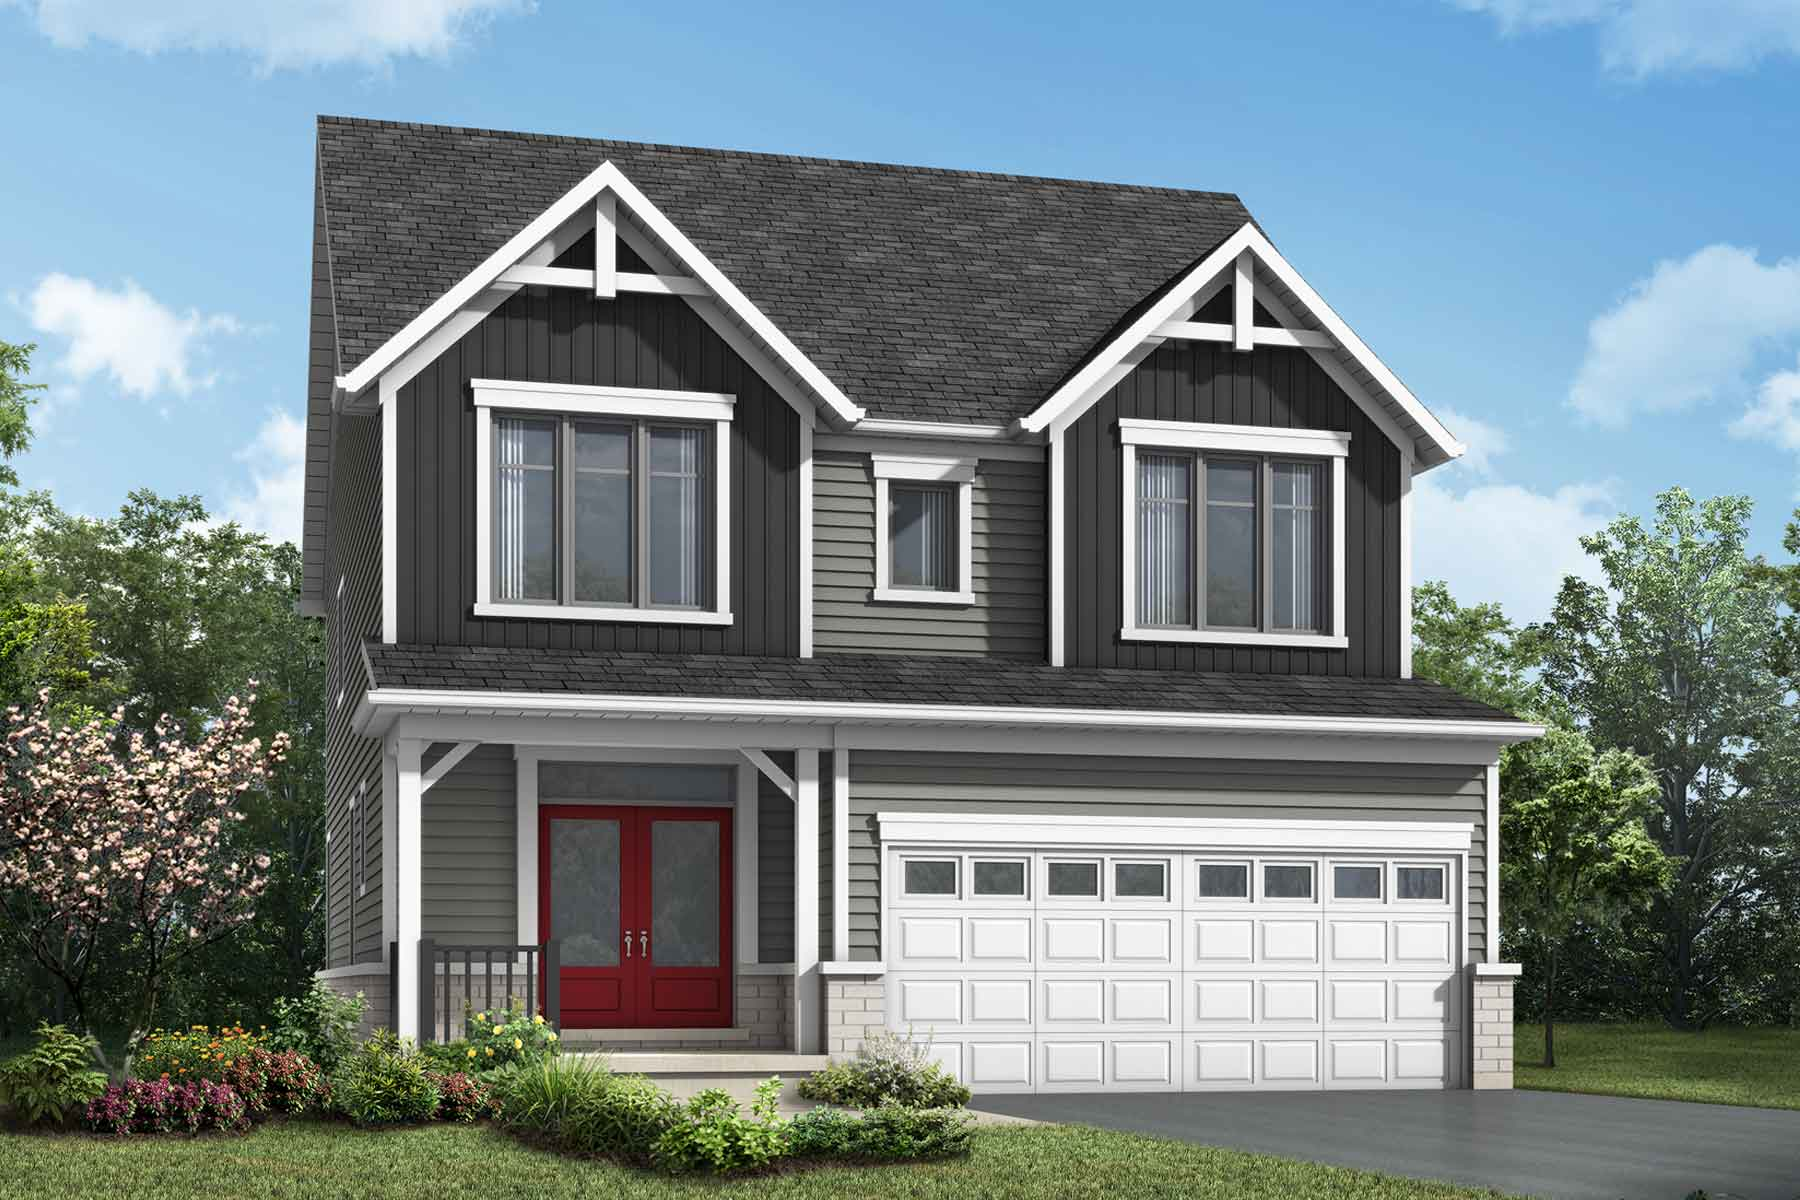 The Brooksdale Plan farmhouse_southestates_brooksdale_main at Wildflower Crossing in Kitchener Ontario by Mattamy Homes